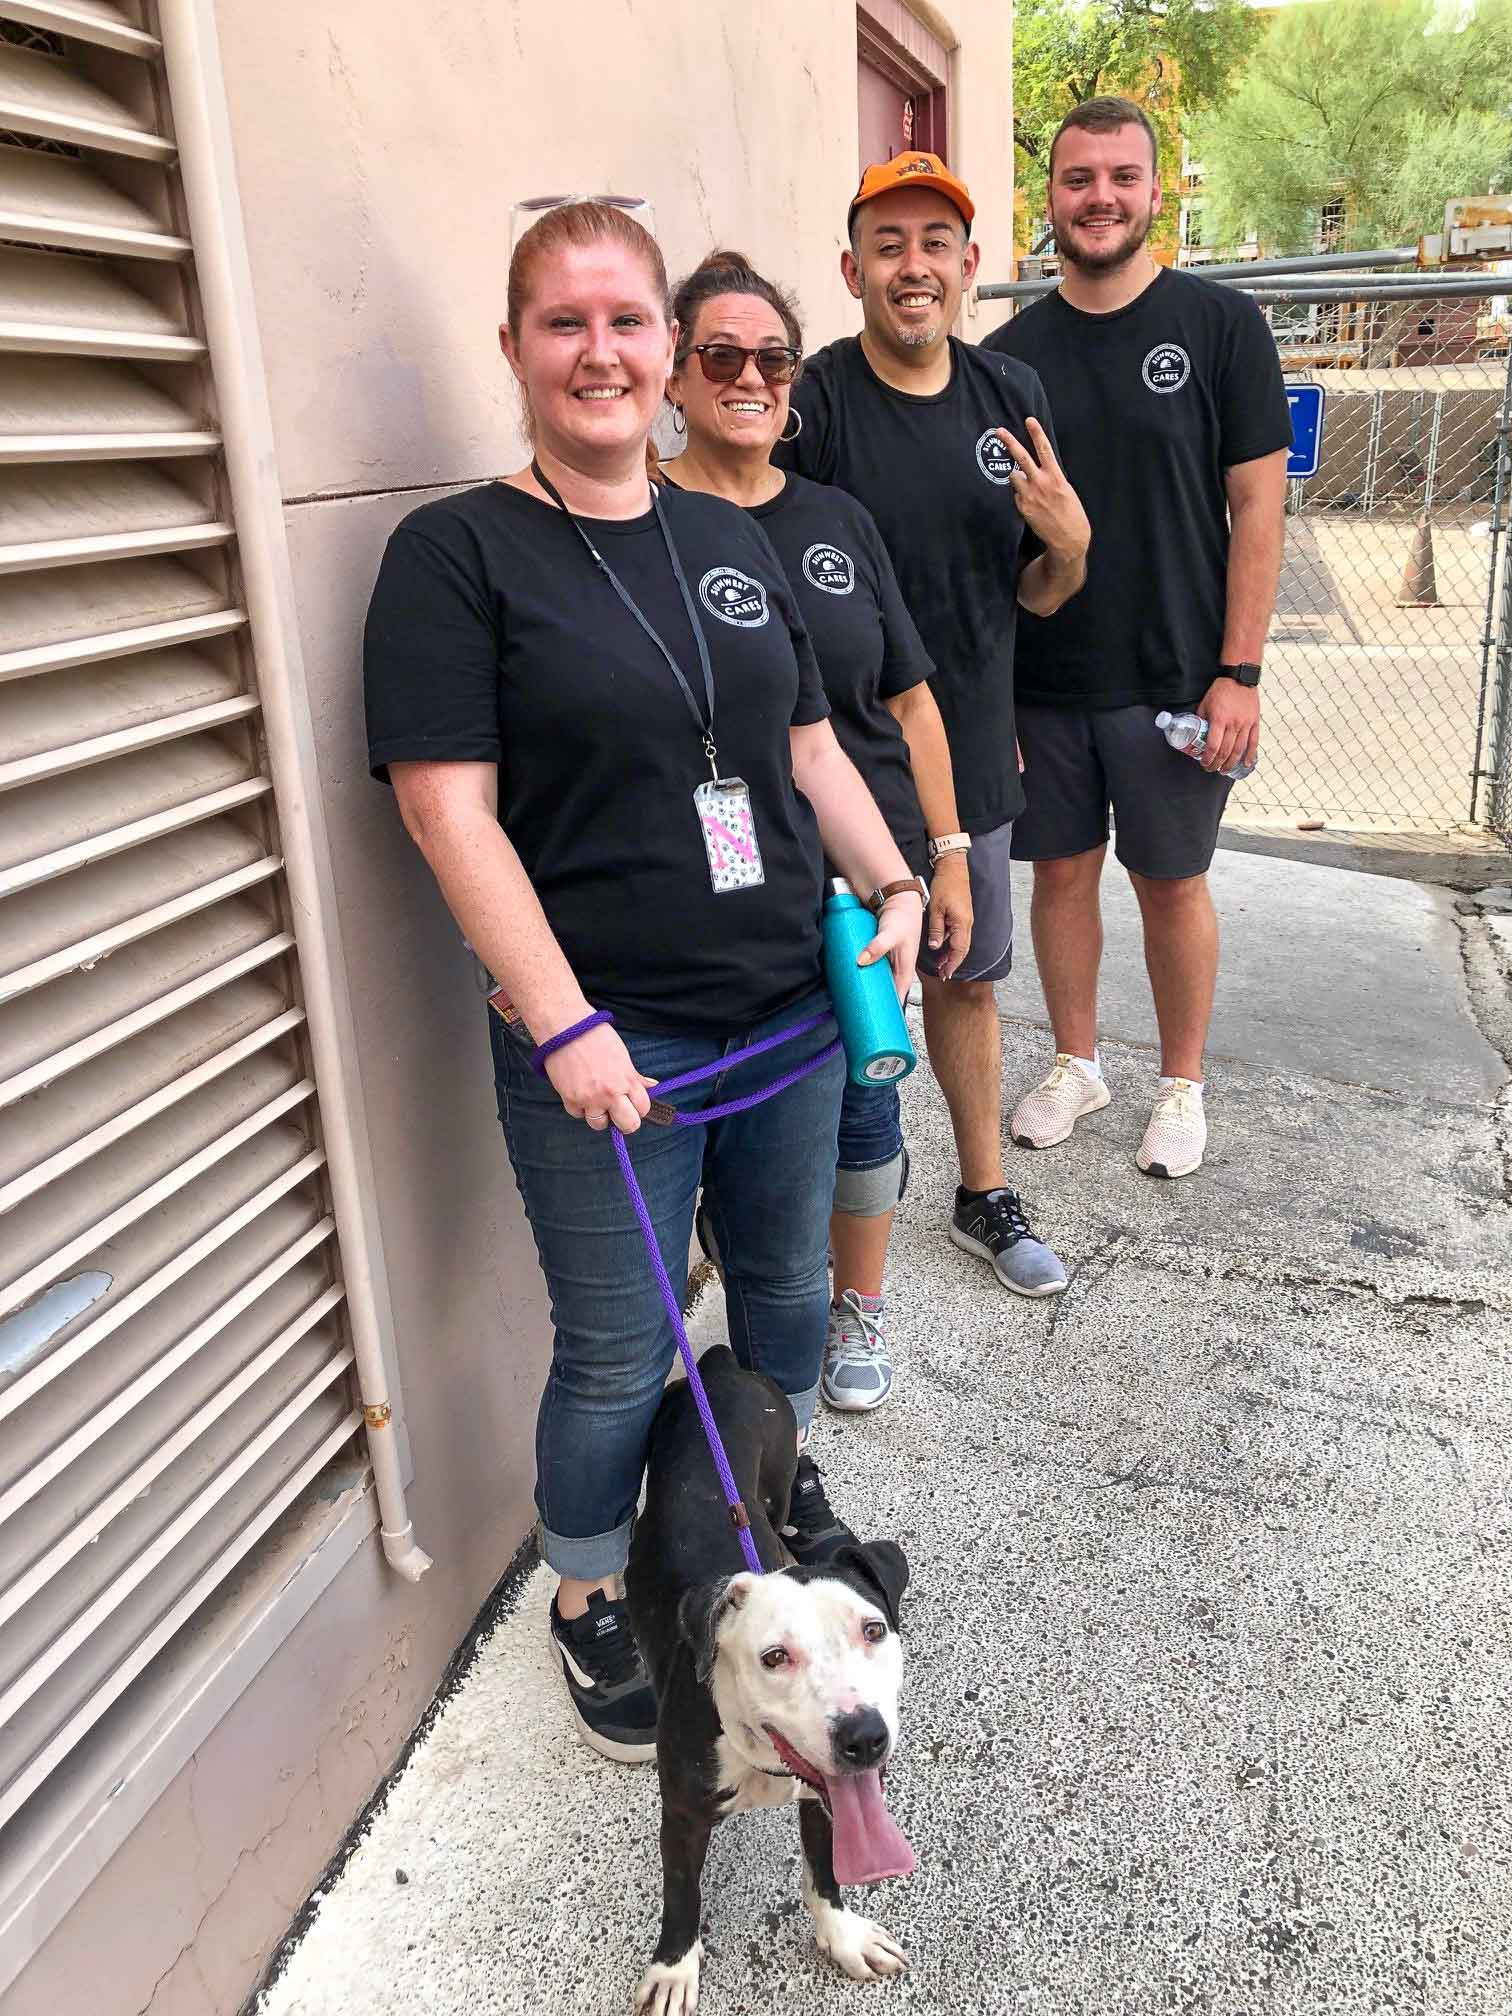 four SunWest employees smile and pose with a brown and white dog on a leash as they volunteer with SunWest Cares at the Maricopa Animal Shelter